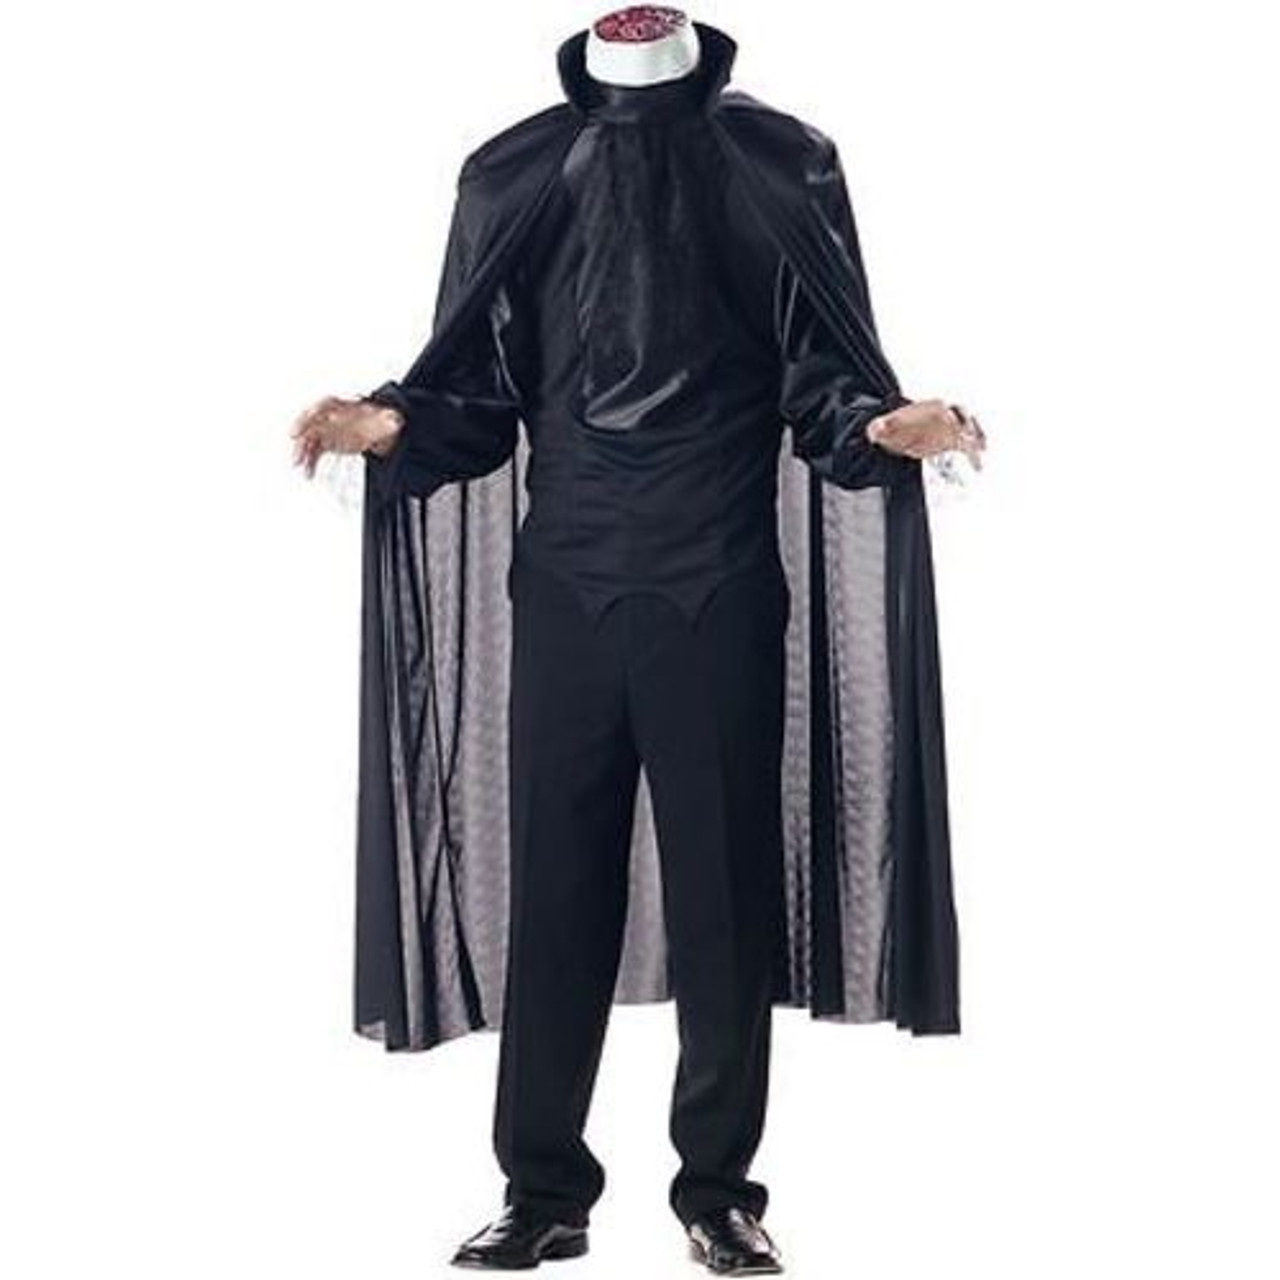 Childrens Girls Wicked Witch Halloween Horror Scary Fancy Dress Costume Outfit